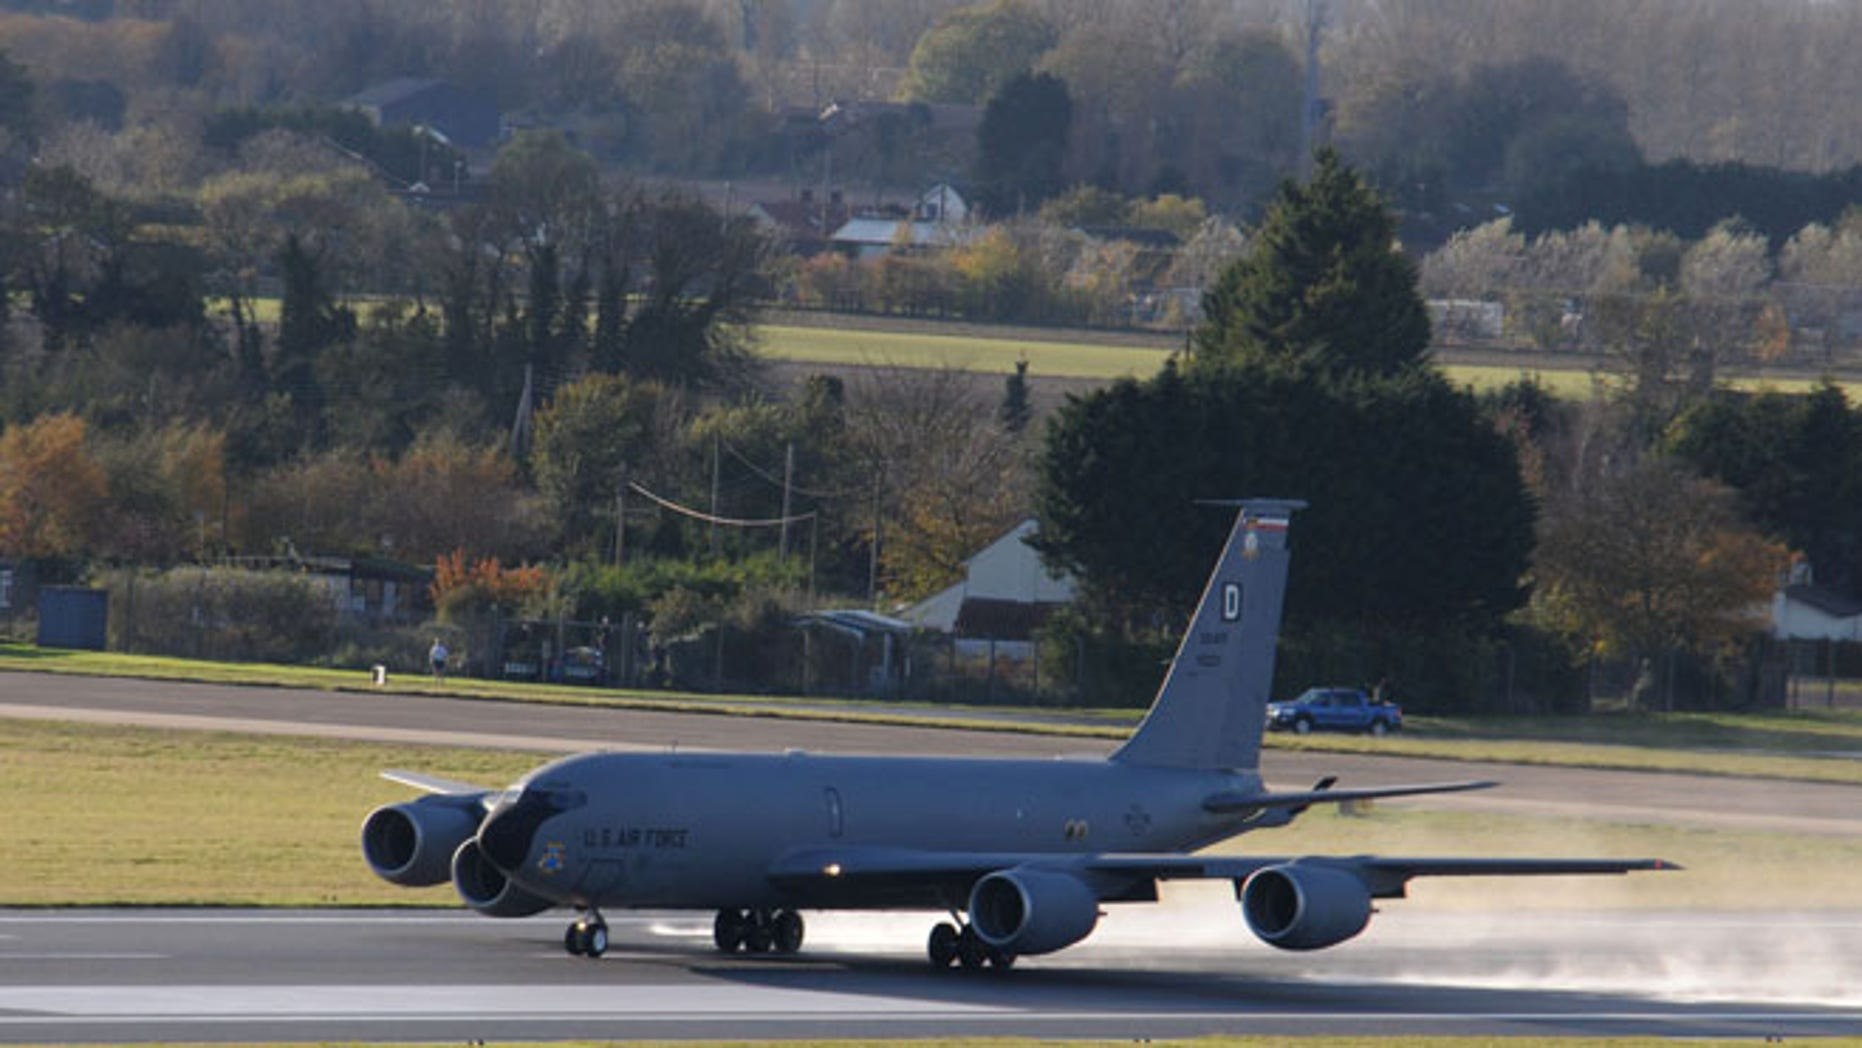 A KC-135 Stratotanker takes off Nov. 12, 2014 at RAF Mildenhall, England.